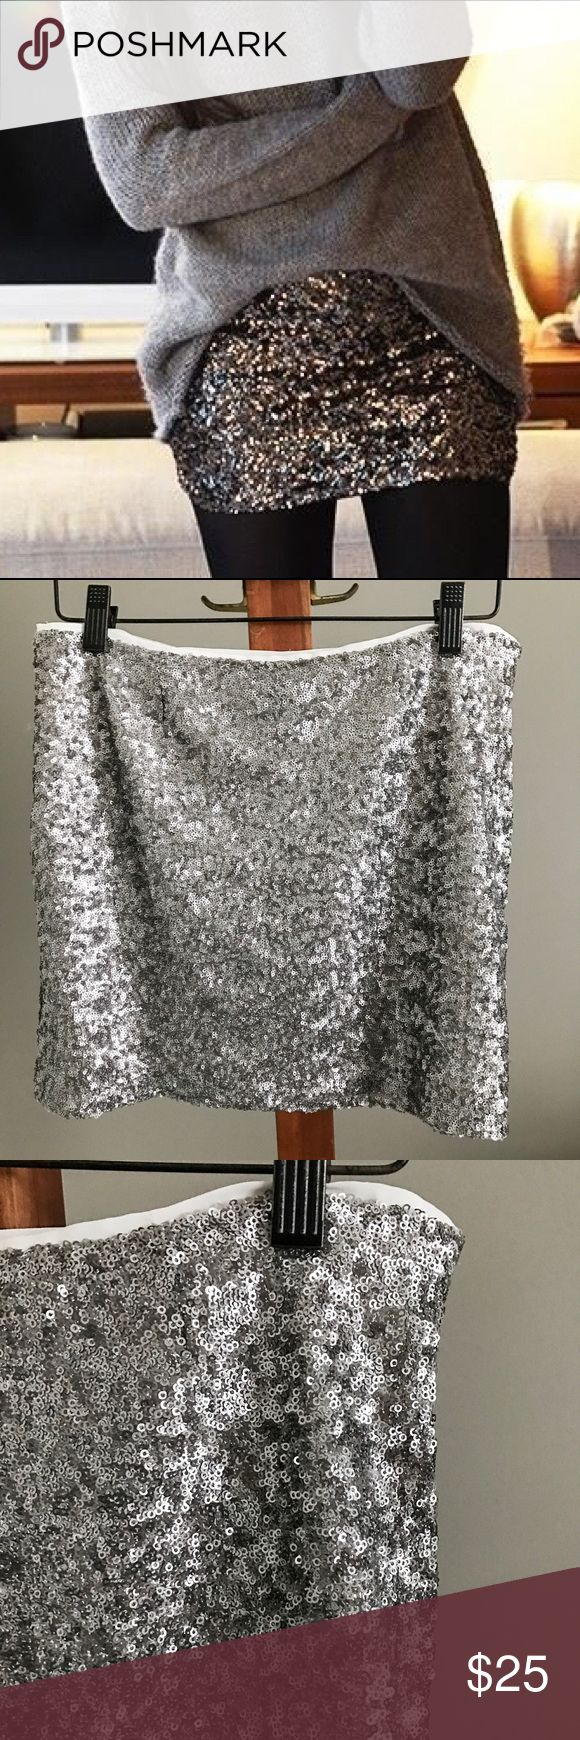 GAP Silver Sequin Mini Skirt Gorgeous sequin mini skirt from GAP outlet. Silver sequins. Looks adorable with a sweater as pictured. First photo is for style inspiration only and doesn't show the actual skirt. Size 1, which I think would best translate to a 0. Measurements upon request. Brand new with tags! GAP Skirts Mini